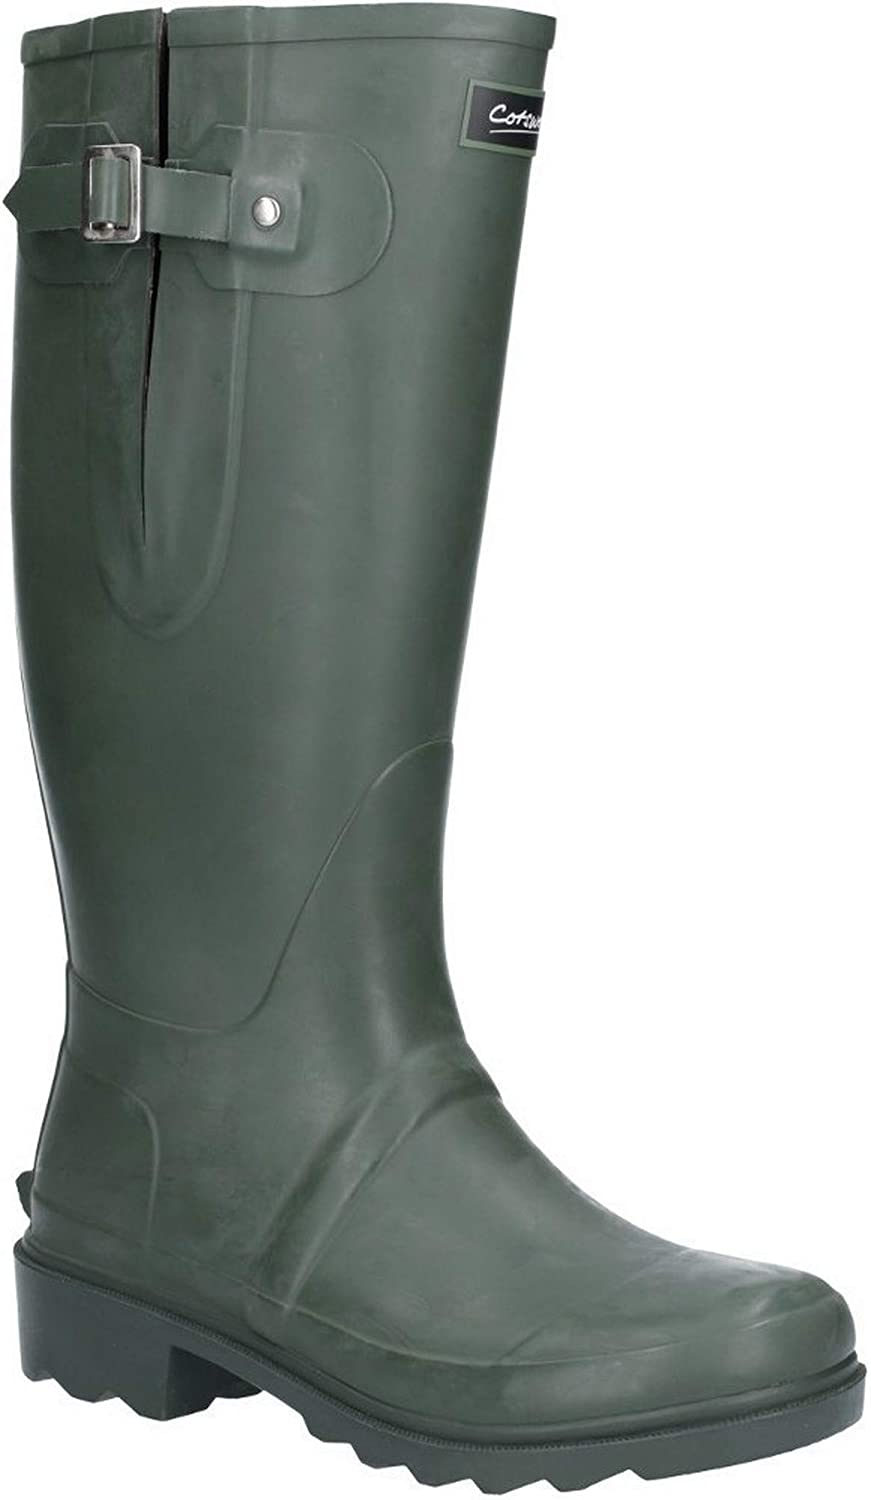 Cotswold Woodchester Neoprene Lined Wellington